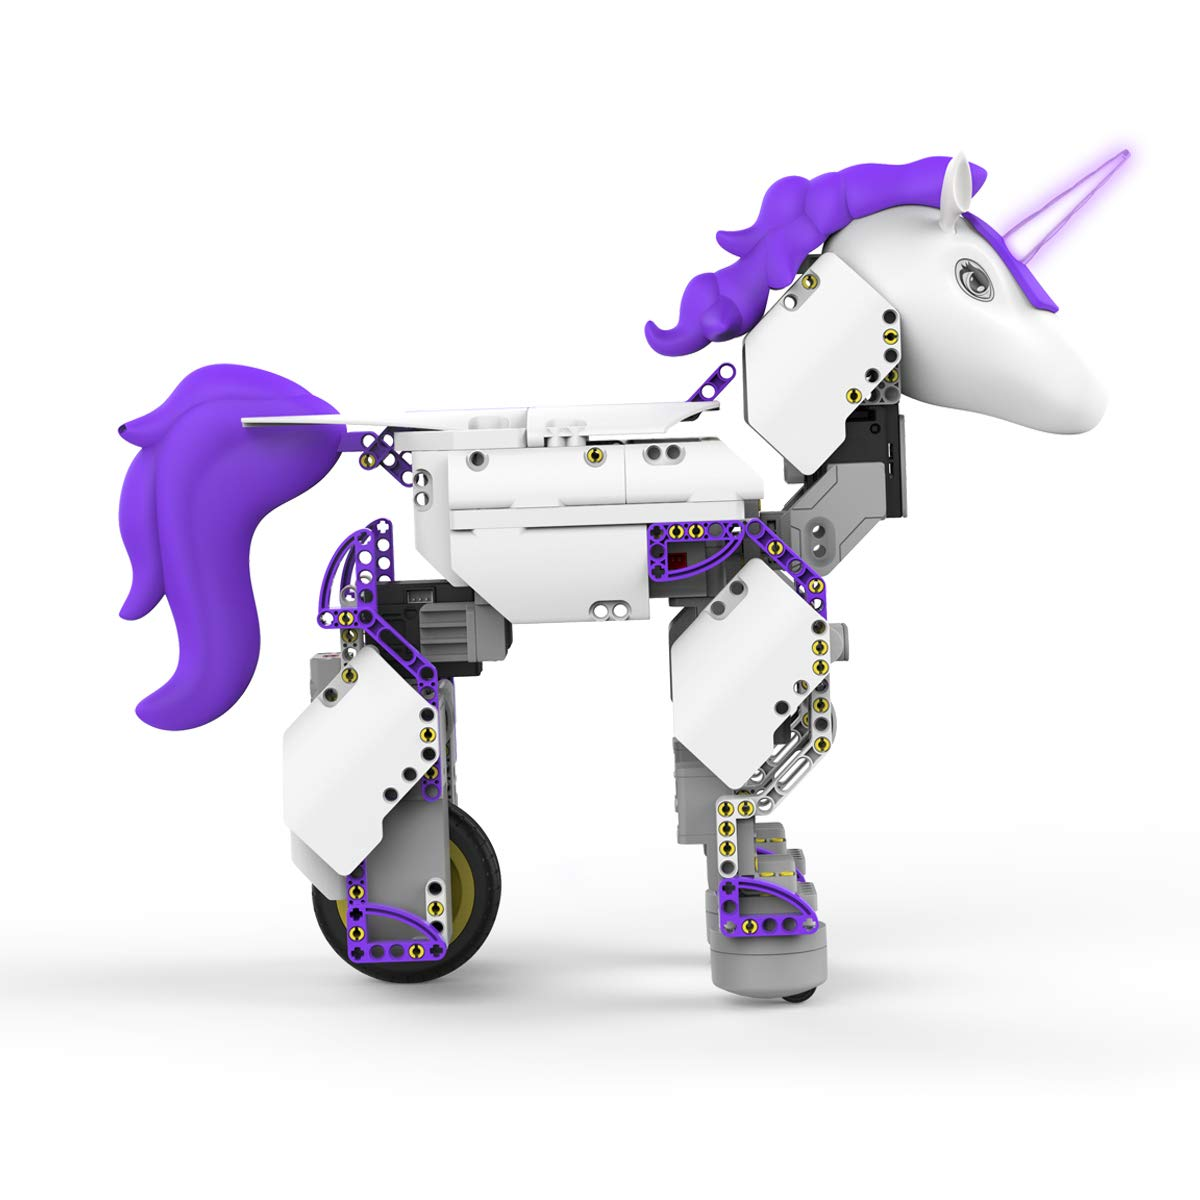 UBTECH Mythical Series: Unicornbot Kit-App-Enabled Building & Coding Stem Learning Kit by UBTECH (Image #7)